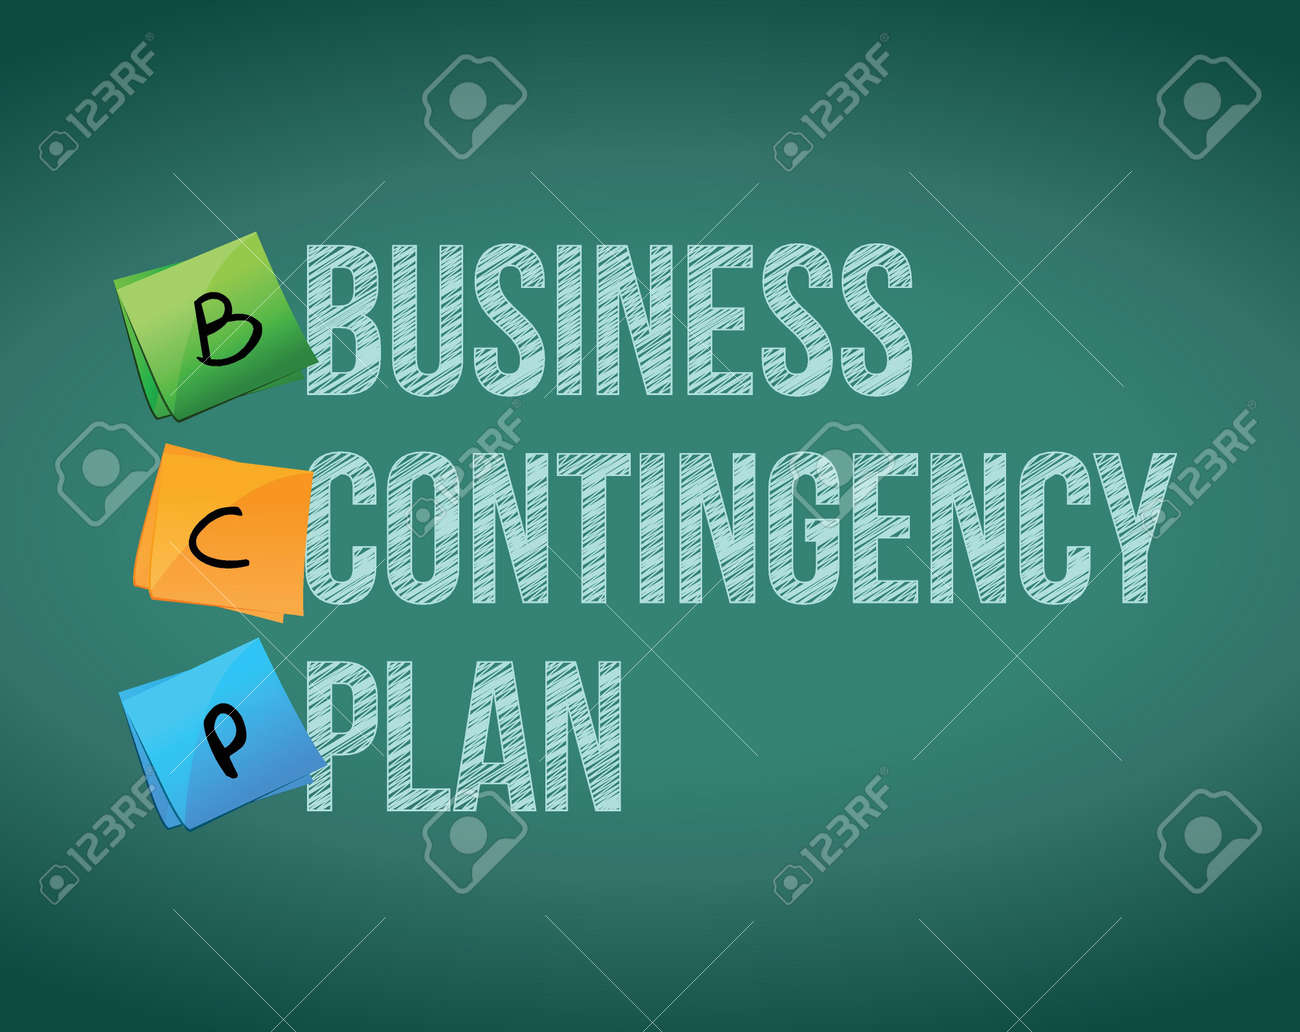 Contingency plan in business